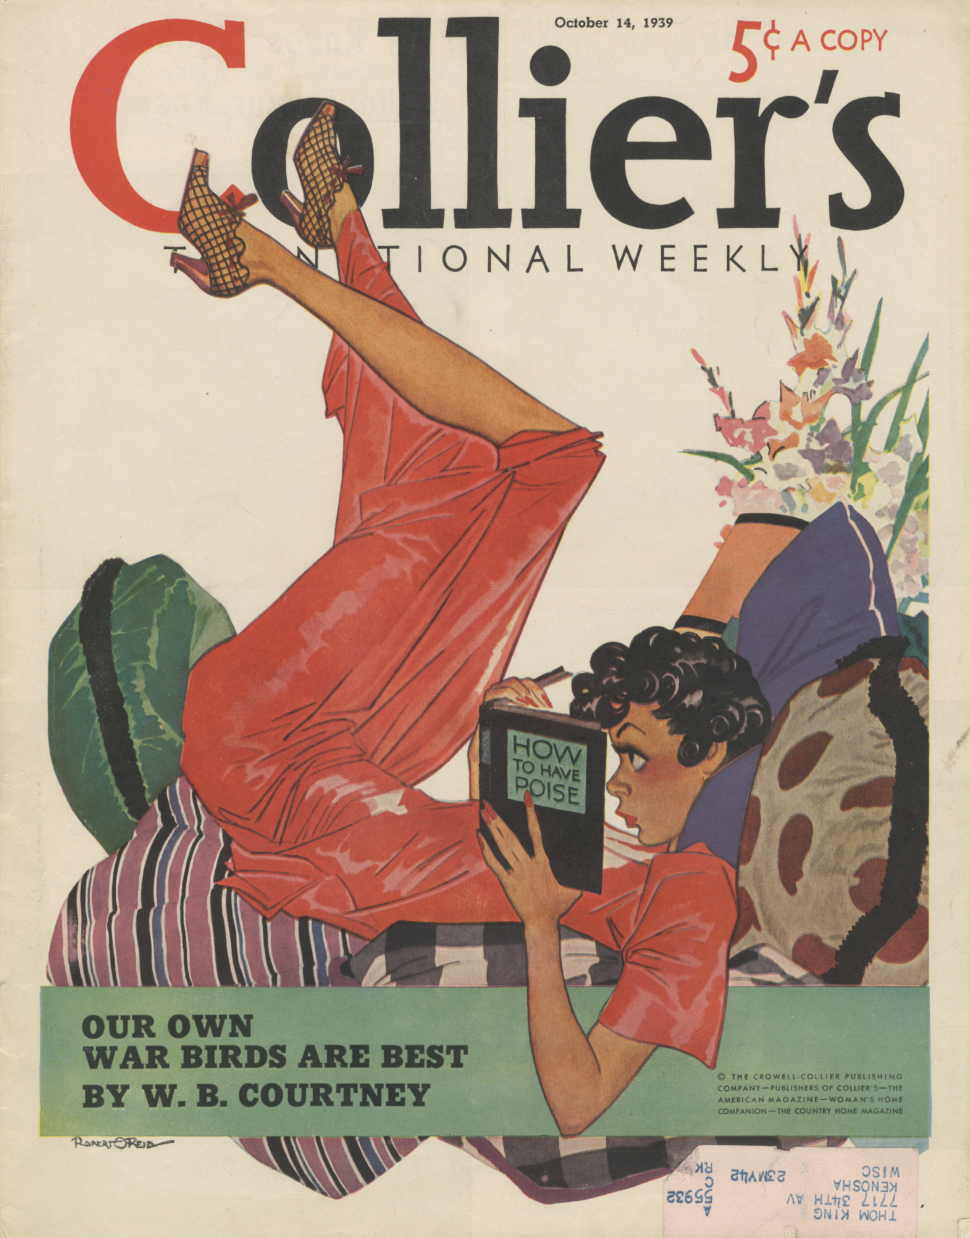 Finally, in a weekend languor–ooh, maybe another time–a Robert O. Reid Collier's cover girl, from October 14, 1939. Good luck everybody!